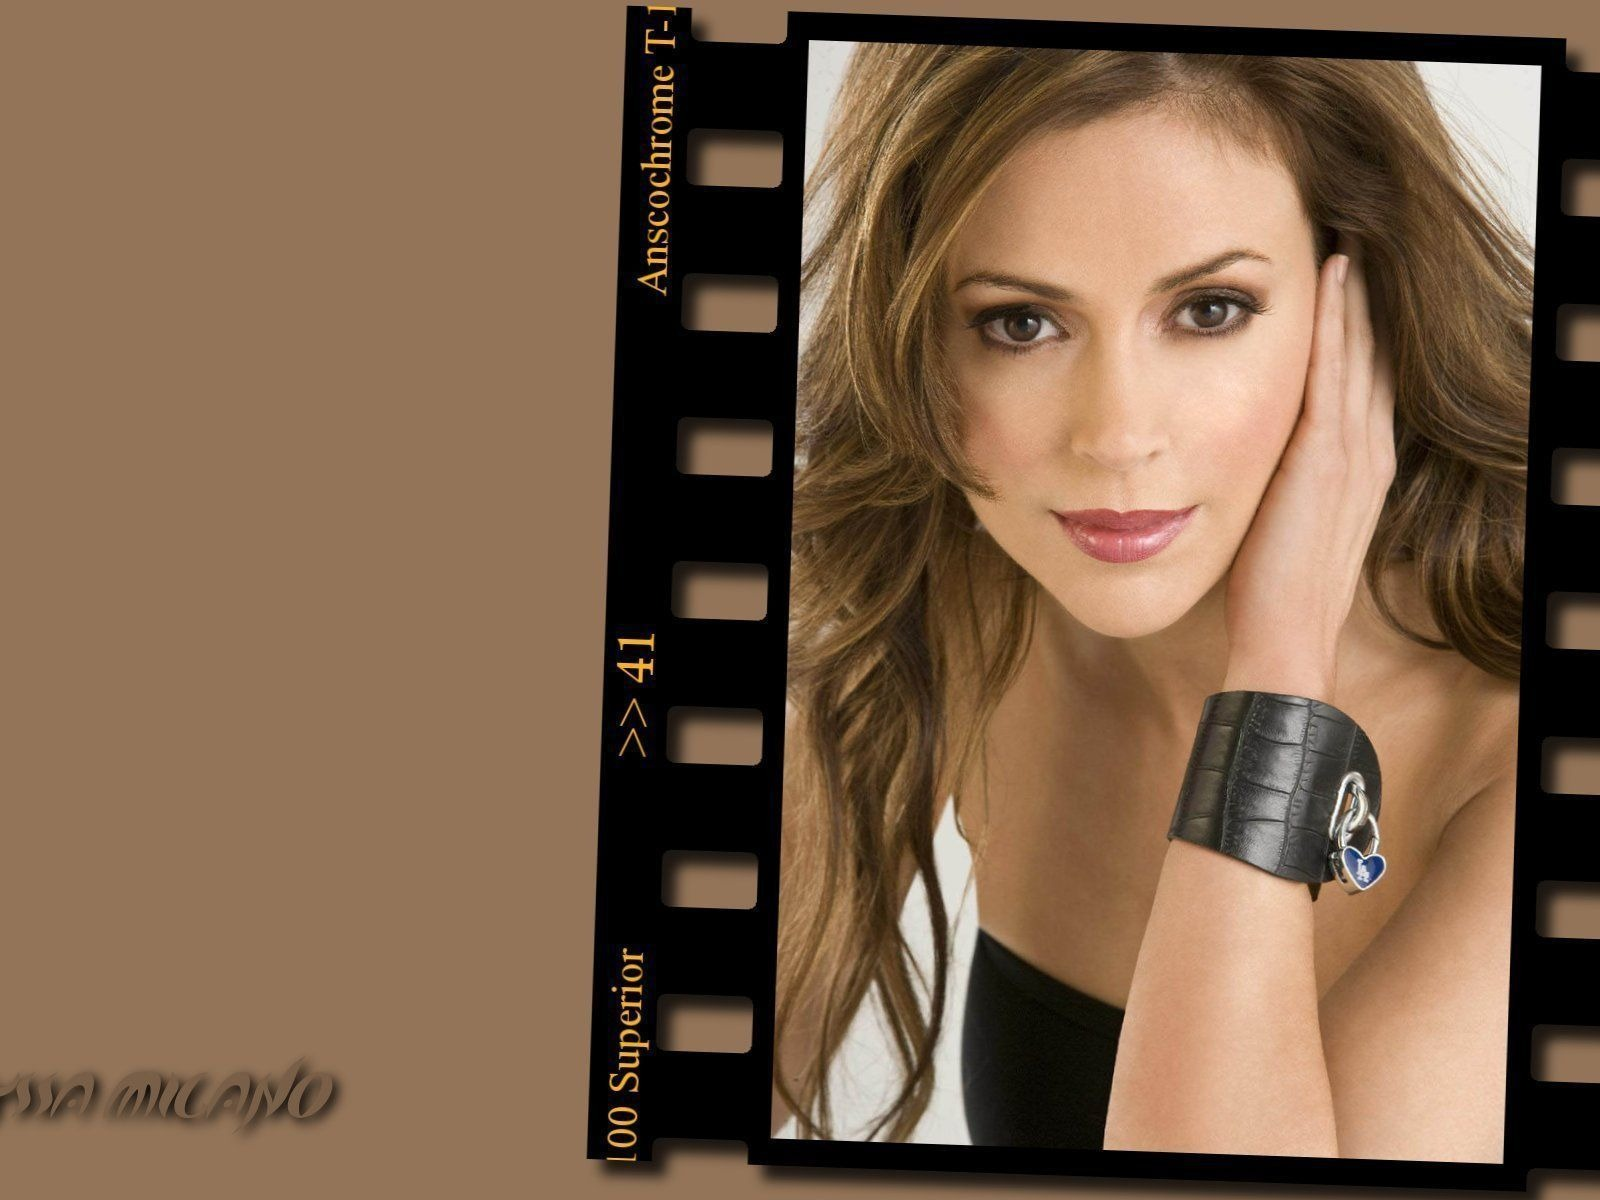 Alyssa Milano #045 - 1600x1200 Wallpapers Pictures Photos Images